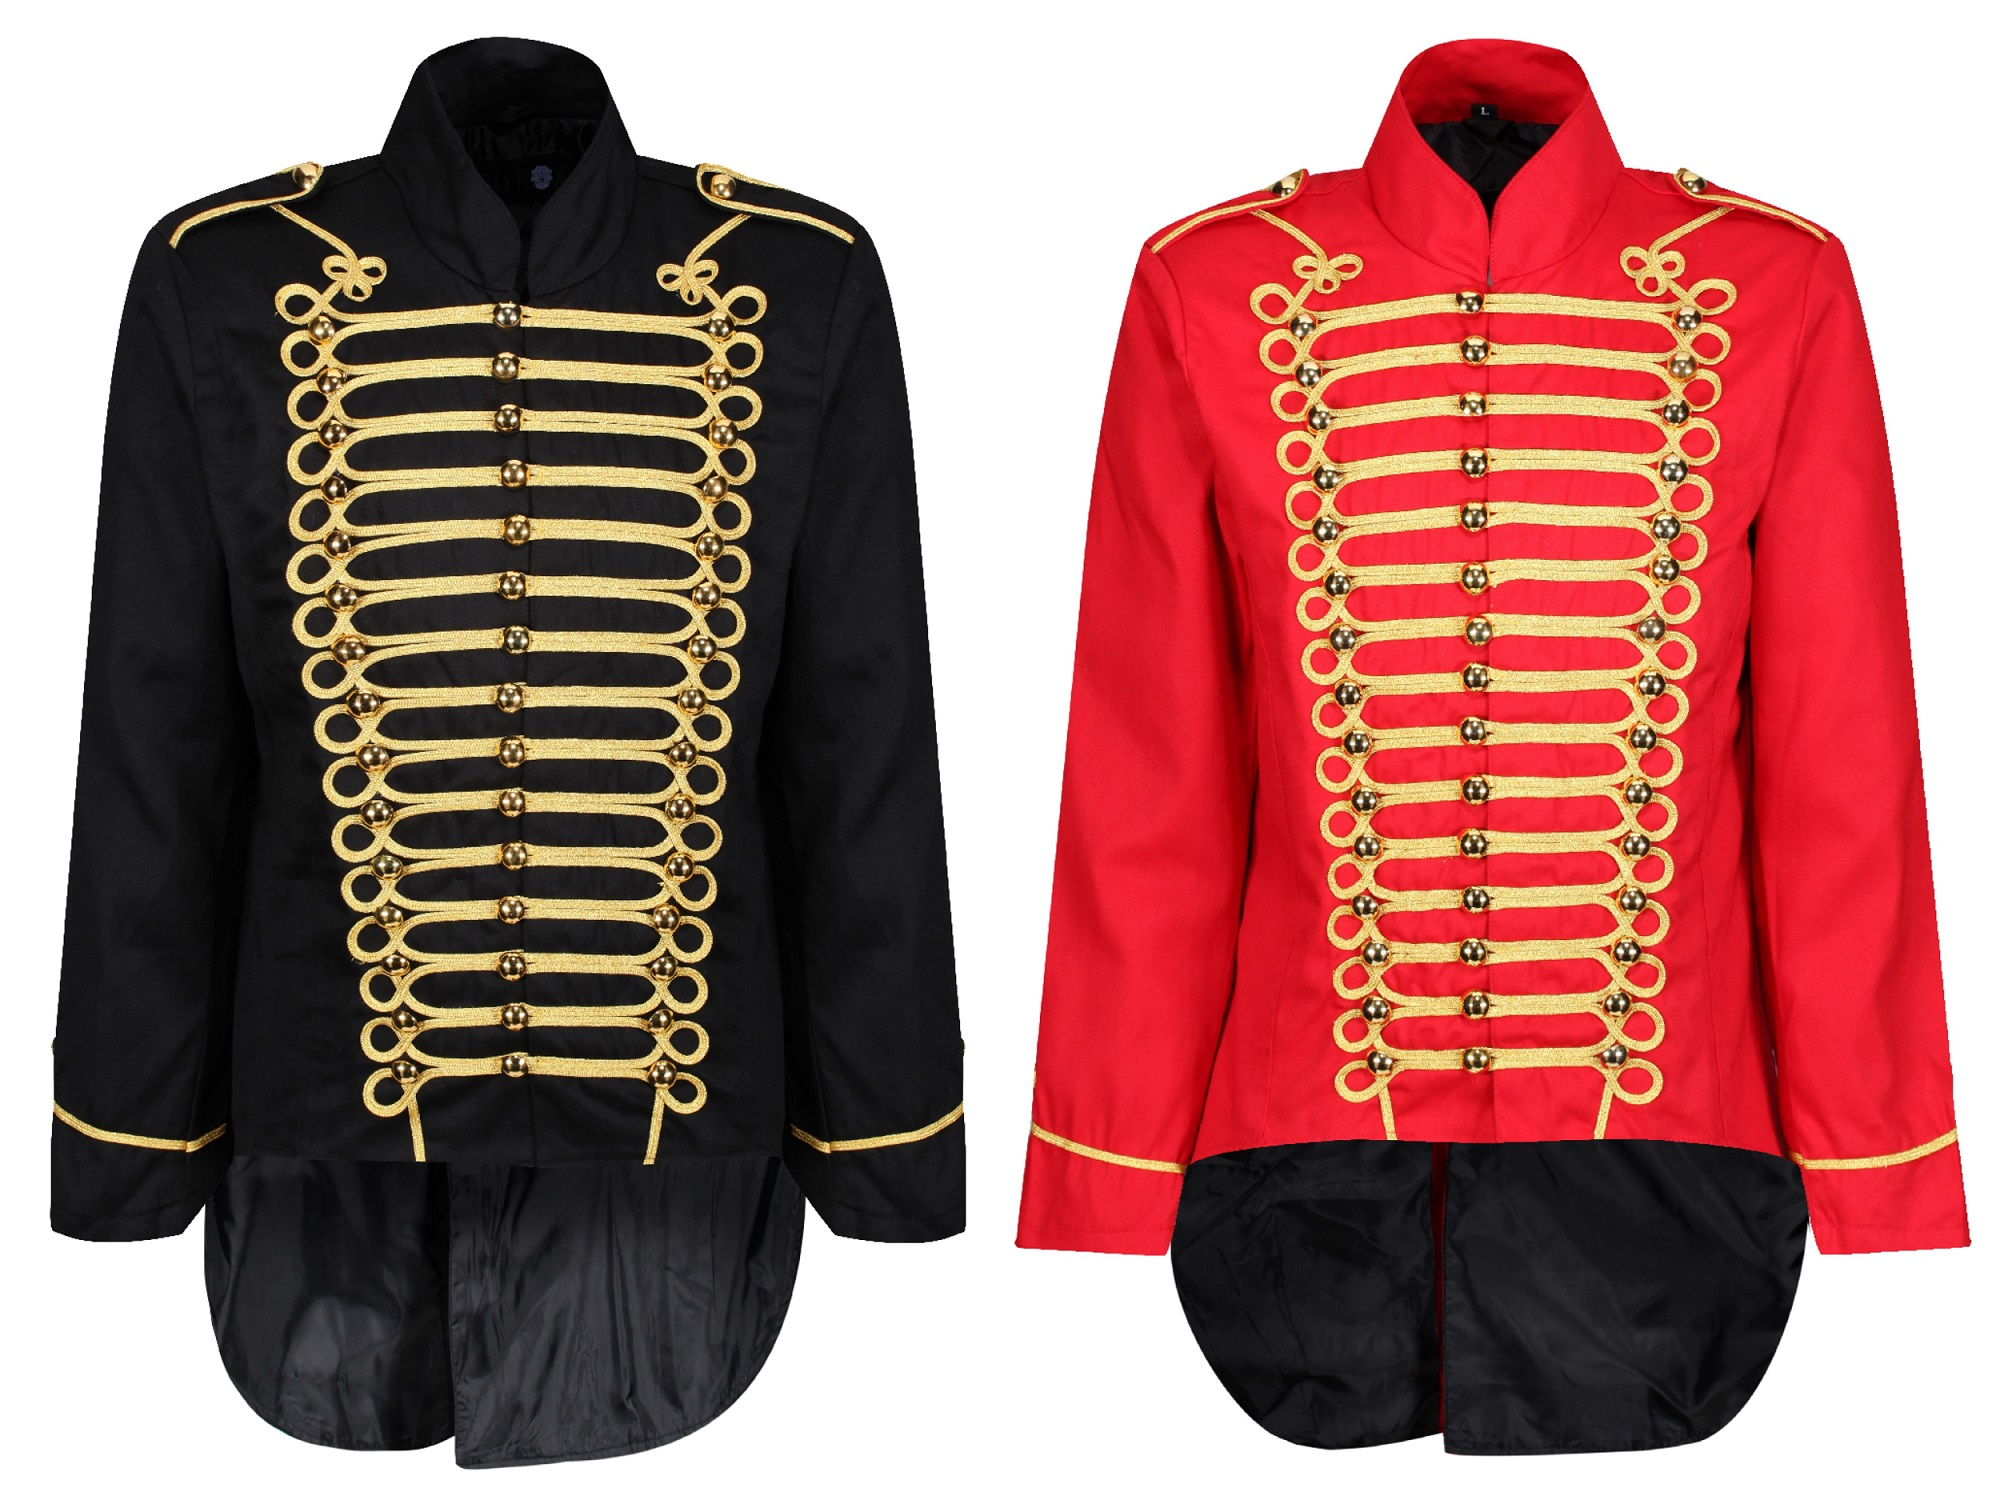 UK STOCK 100/% COTTON STEAMPUNK SILVER MILITARY JACKET DRUMMER BAND PARADE